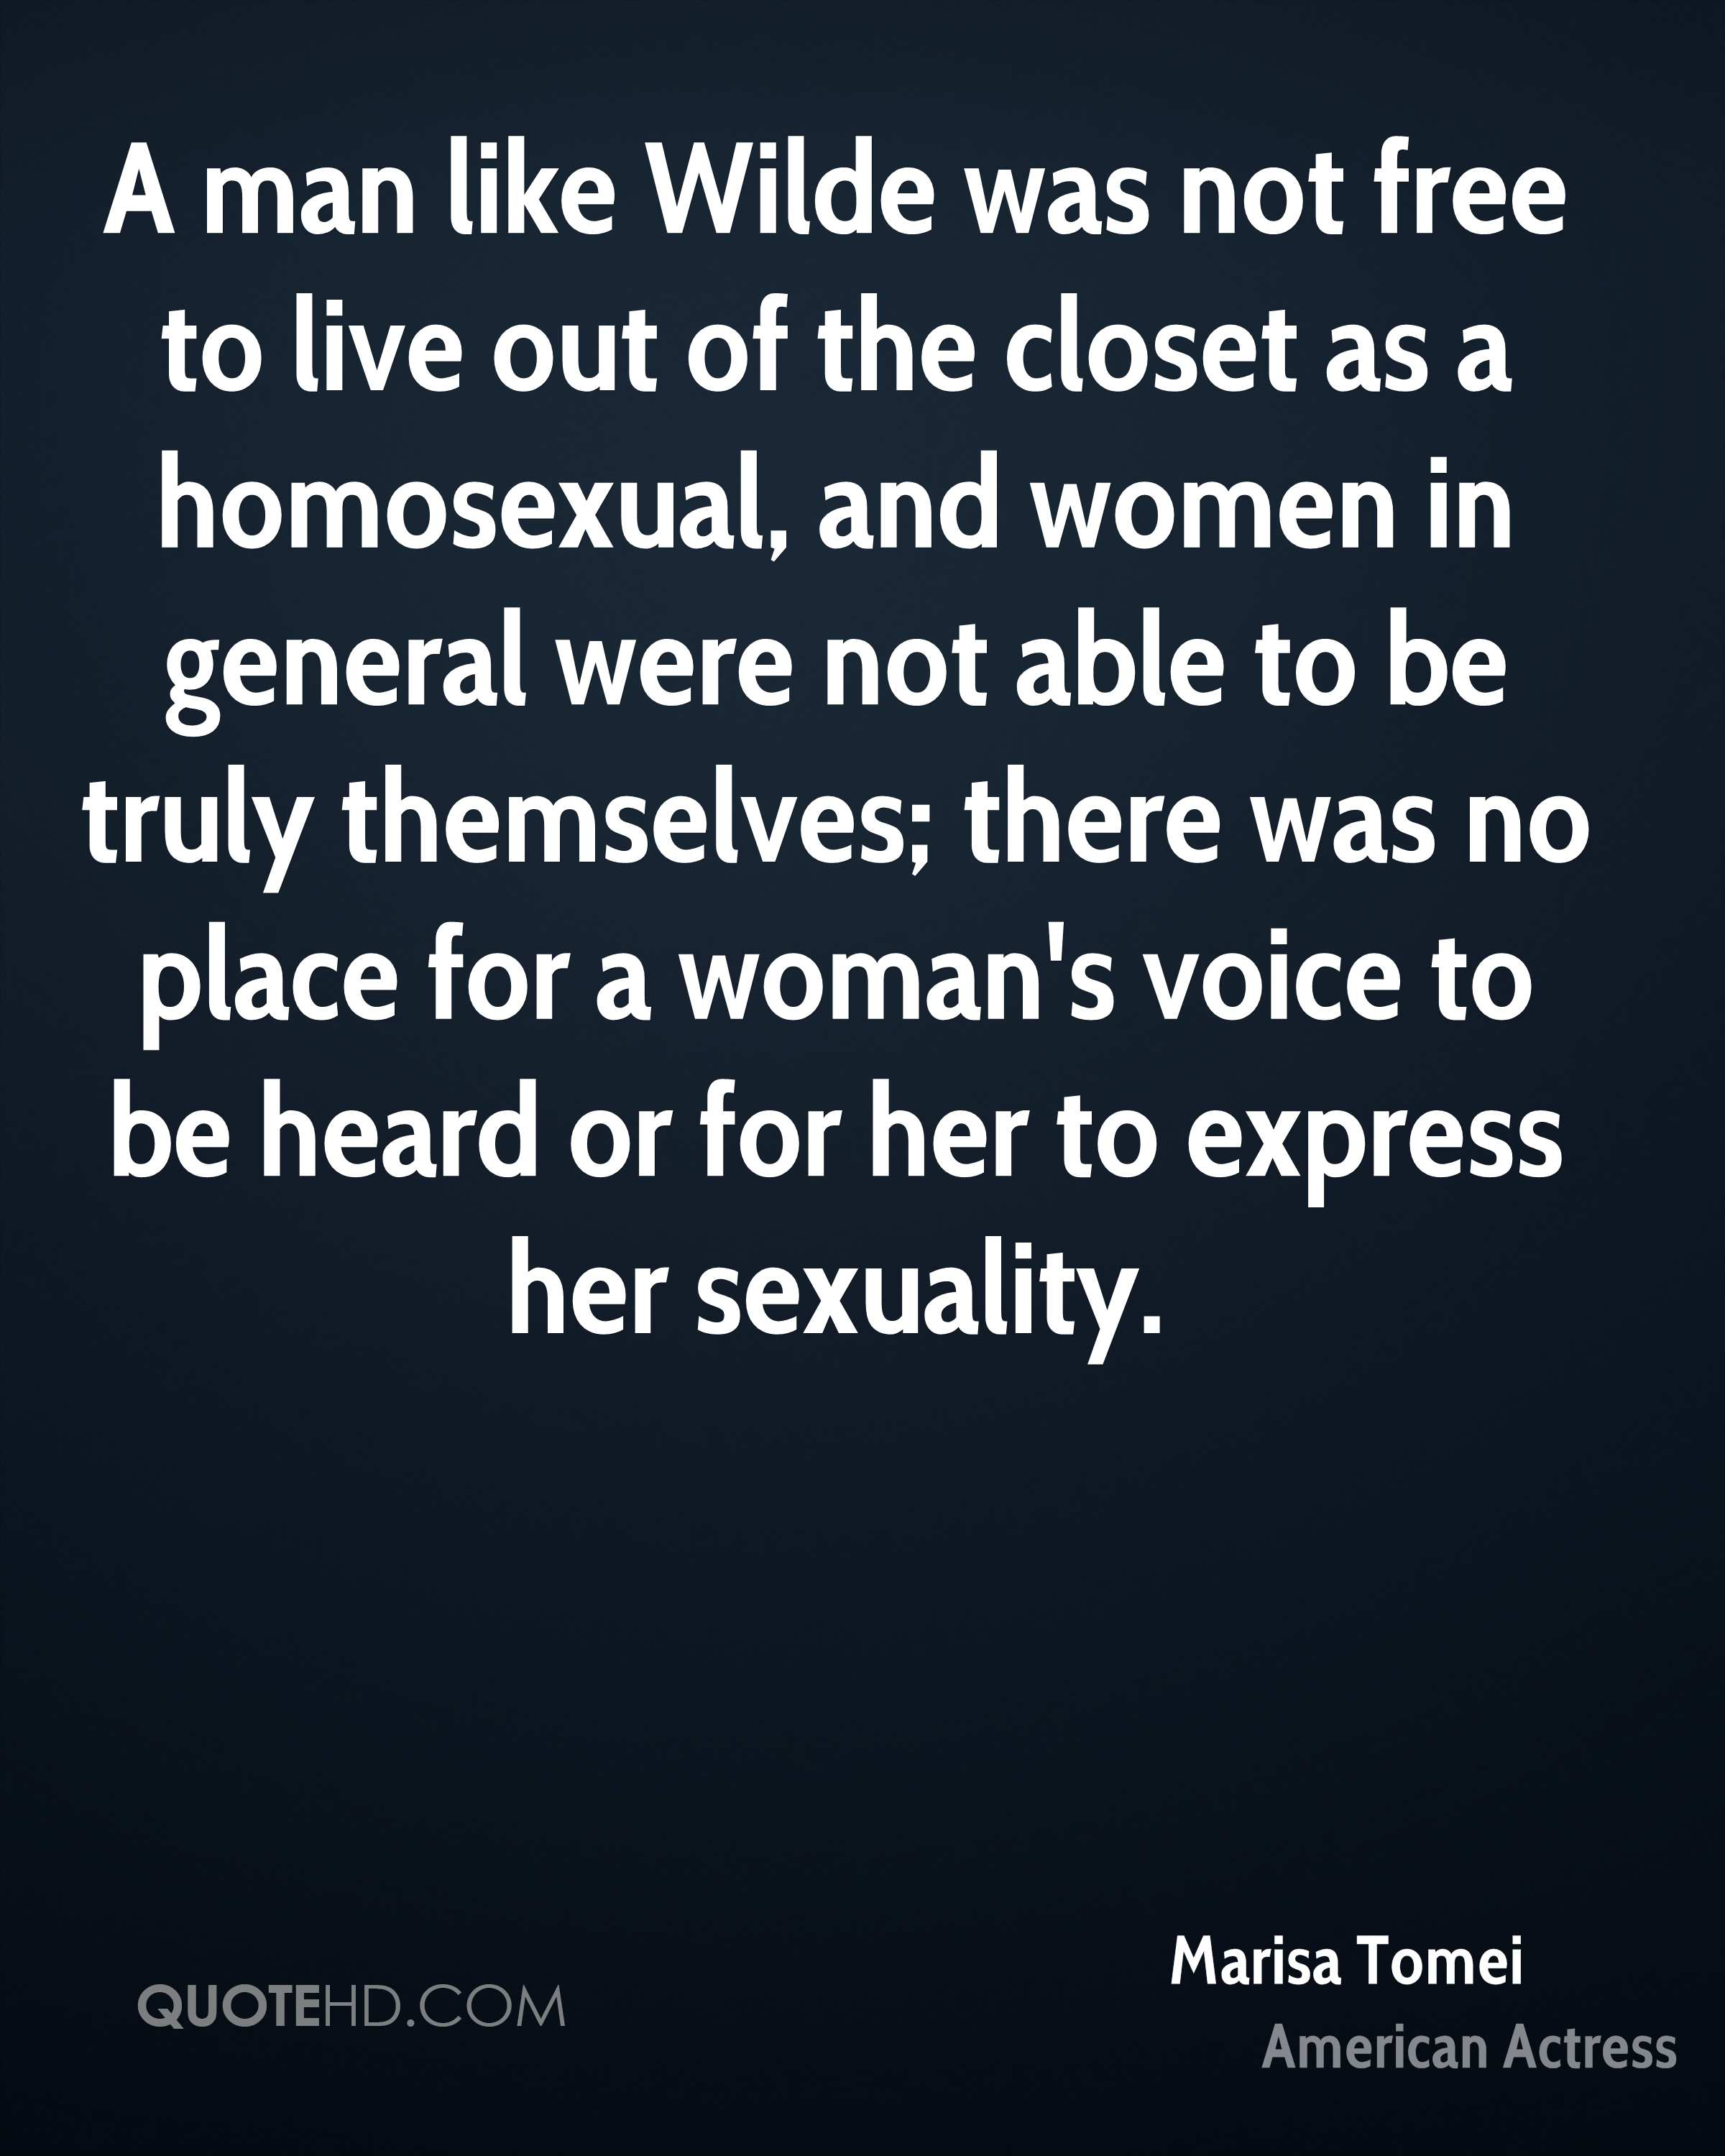 A man like Wilde was not free to live out of the closet as a homosexual, and women in general were not able to be truly themselves; there was no place for a woman's voice to be heard or for her to express her sexuality.